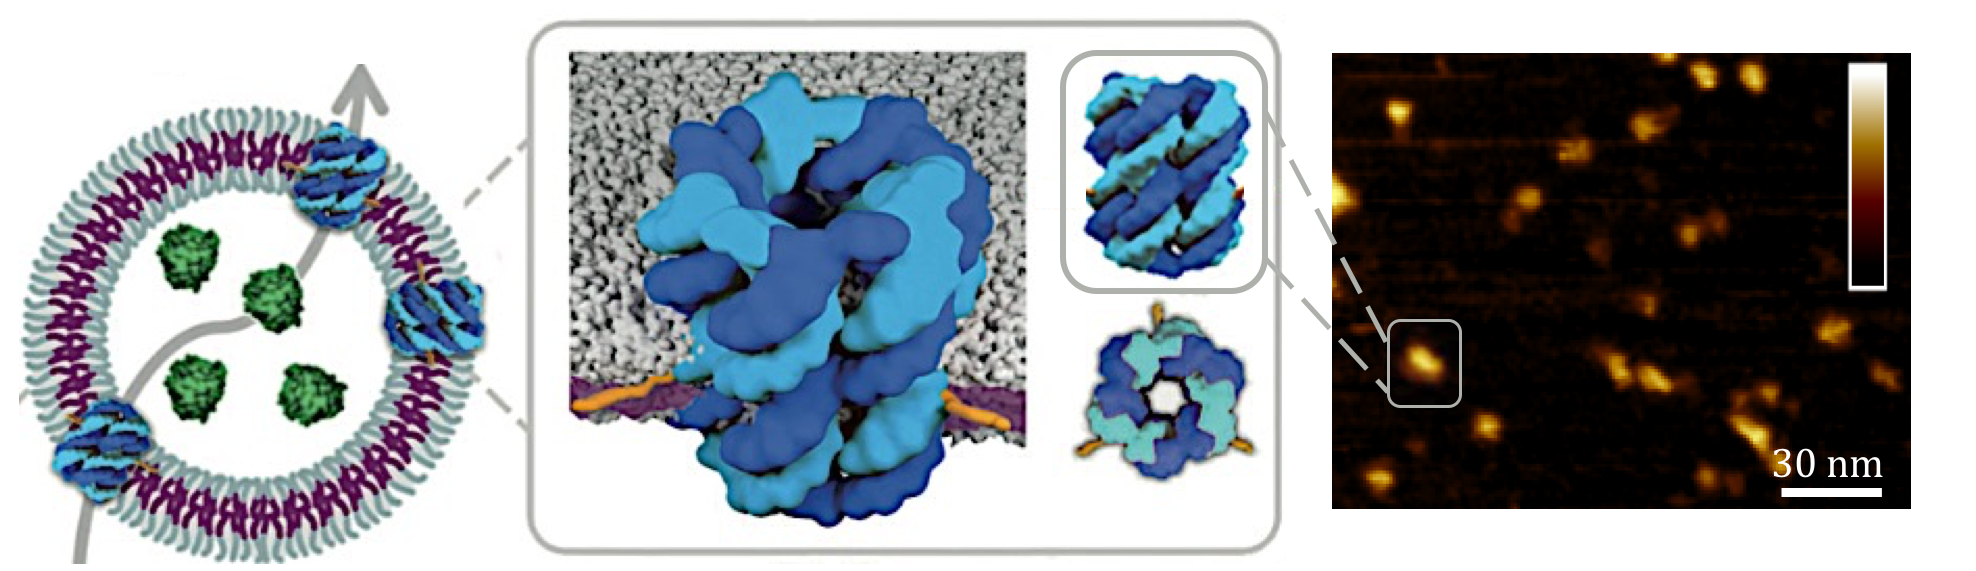 AFM determines the dimensions of   DNA nanopores (blue) embedded within a nanocontainer drug delivery system